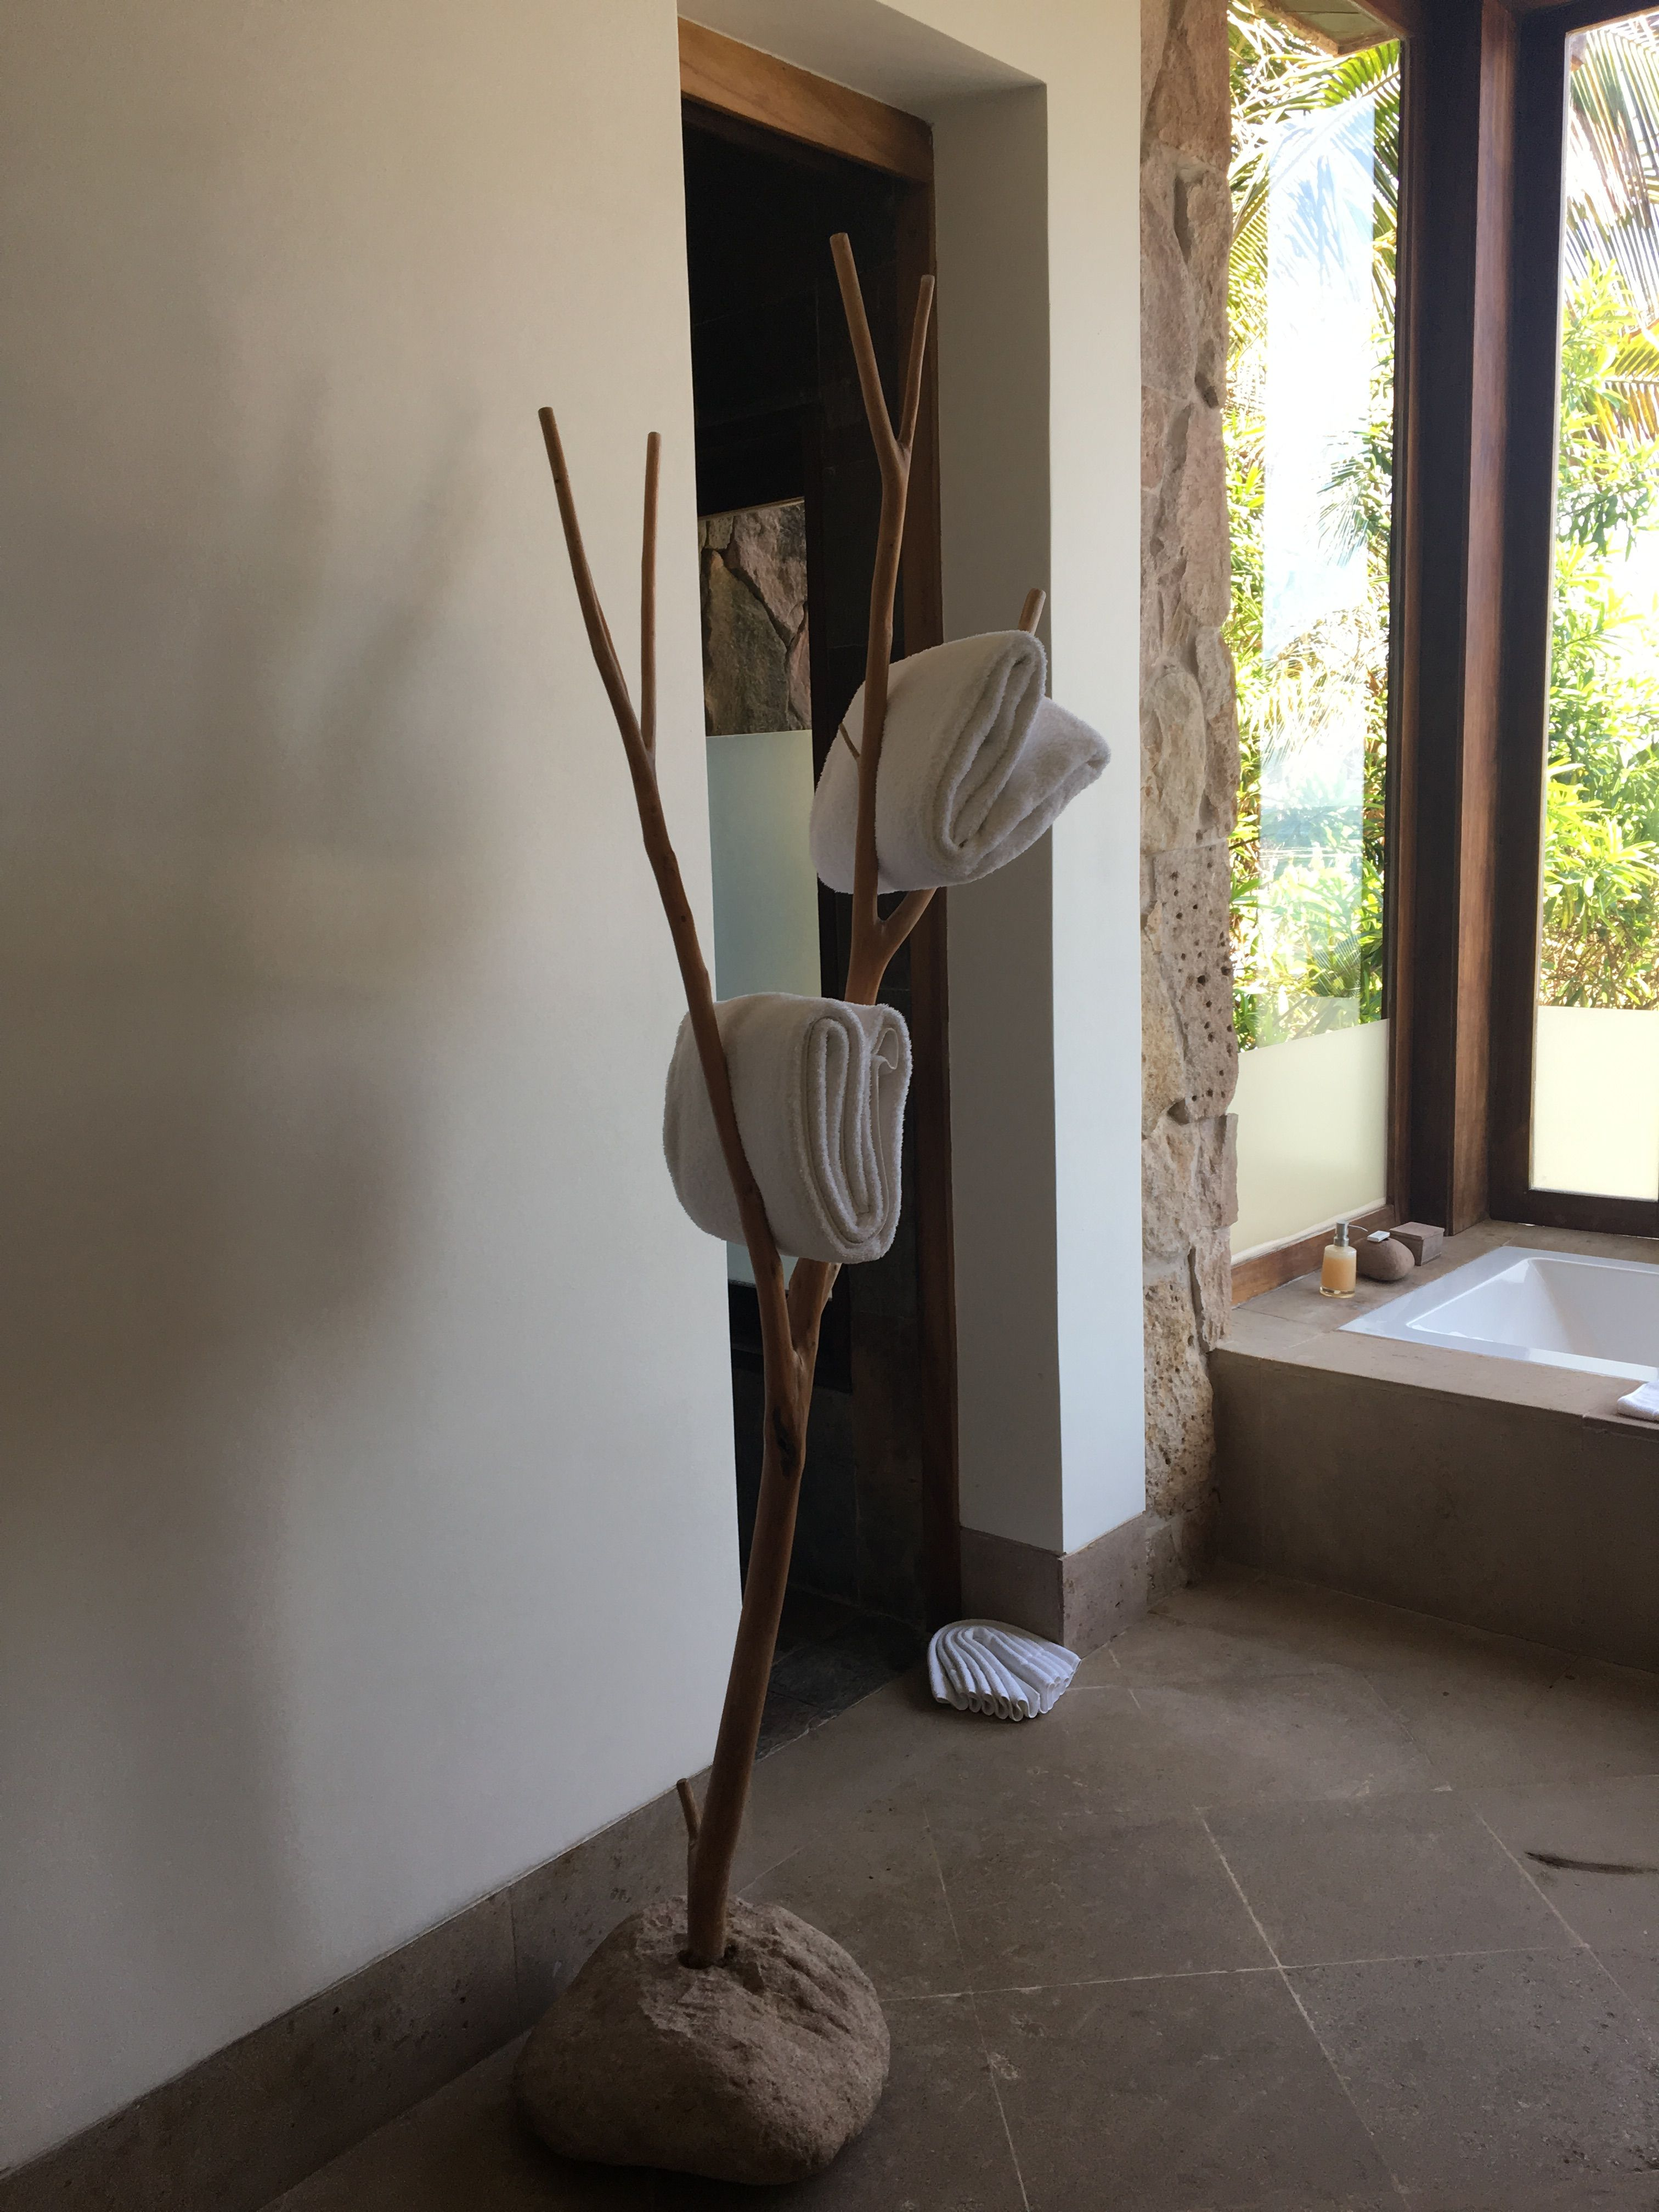 Very ucgreenud way to rack towels and dry clothes anchored by a stone